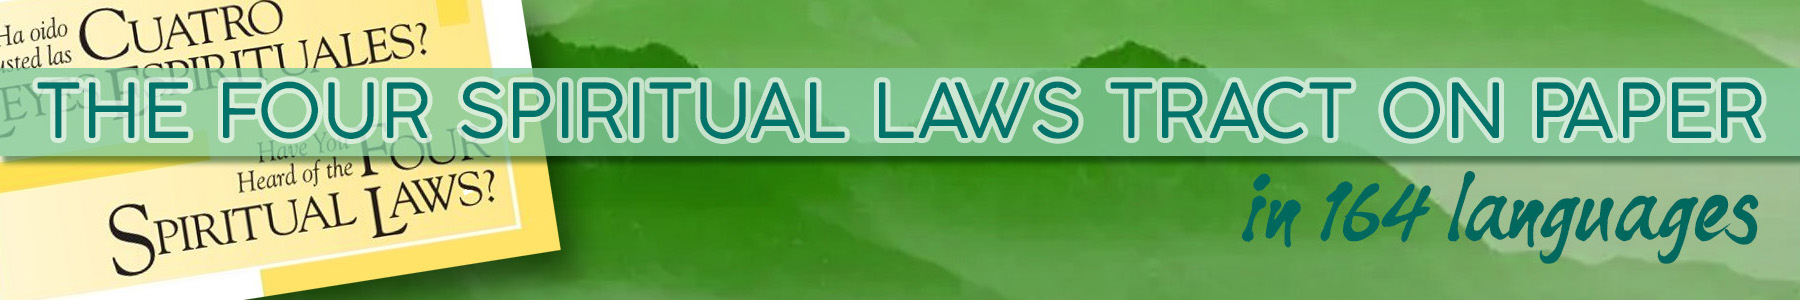 Four Spiritual Laws Tract on Paper